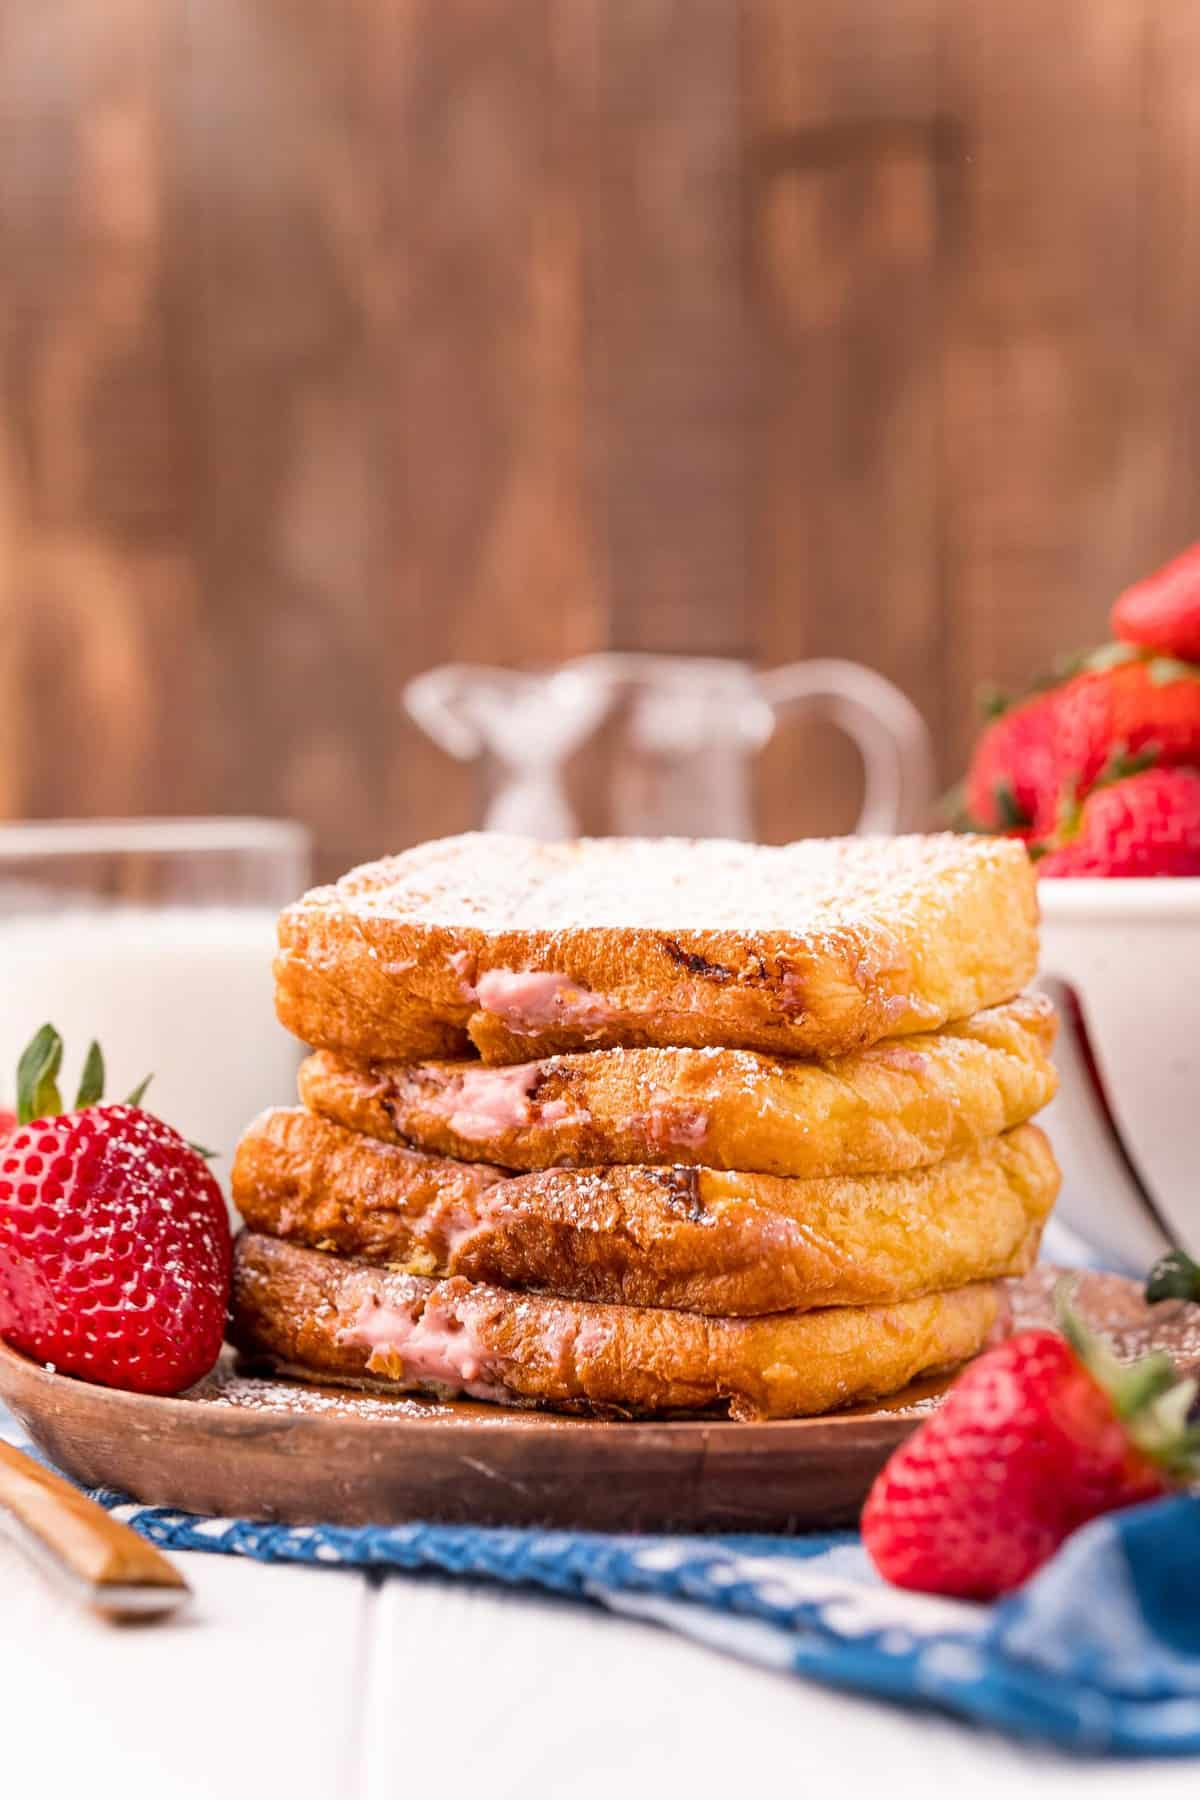 Stack of french toast surrounded by fresh strawberries.